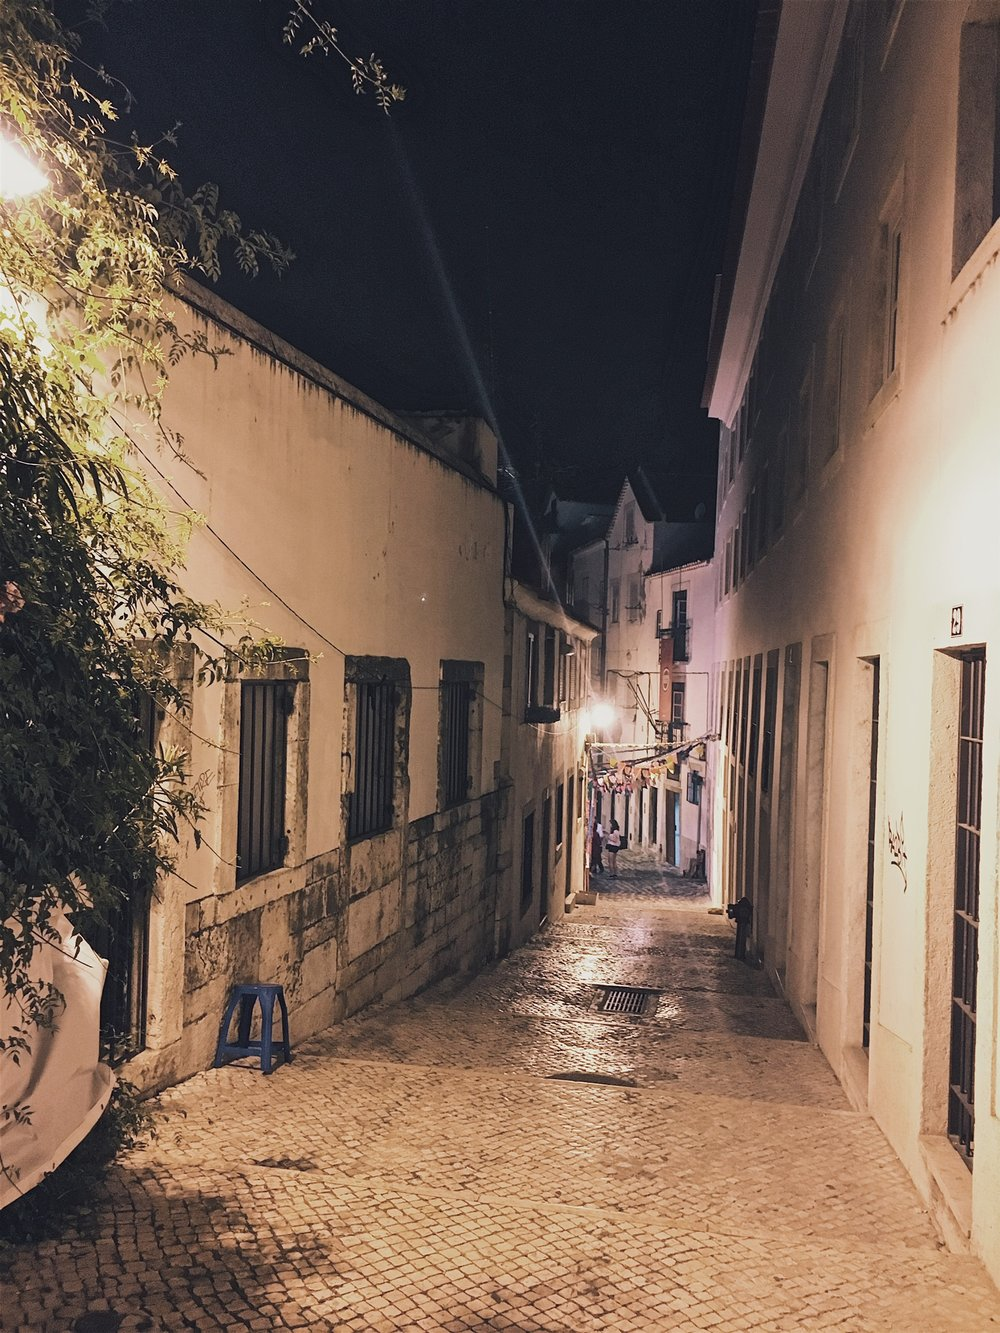 Wandering nighttime streets, stumbling upon lively gatherings along the way